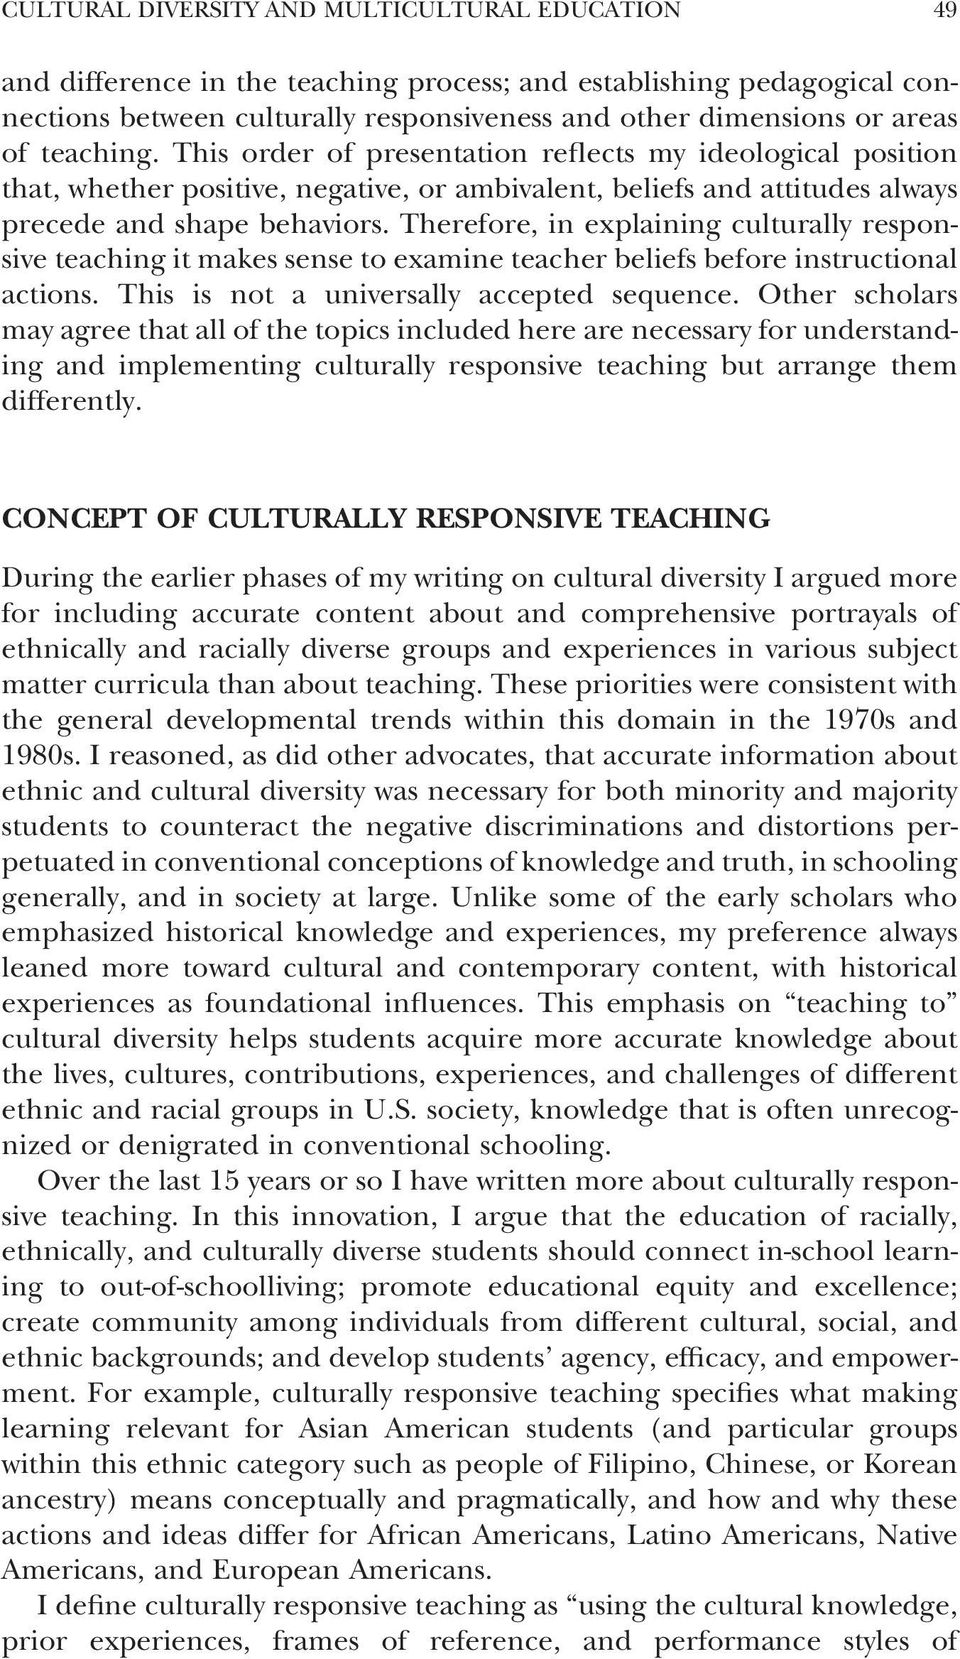 Therefore, in explaining culturally responsive teaching it makes sense to examine teacher beliefs before instructional actions. This is not a universally accepted sequence.